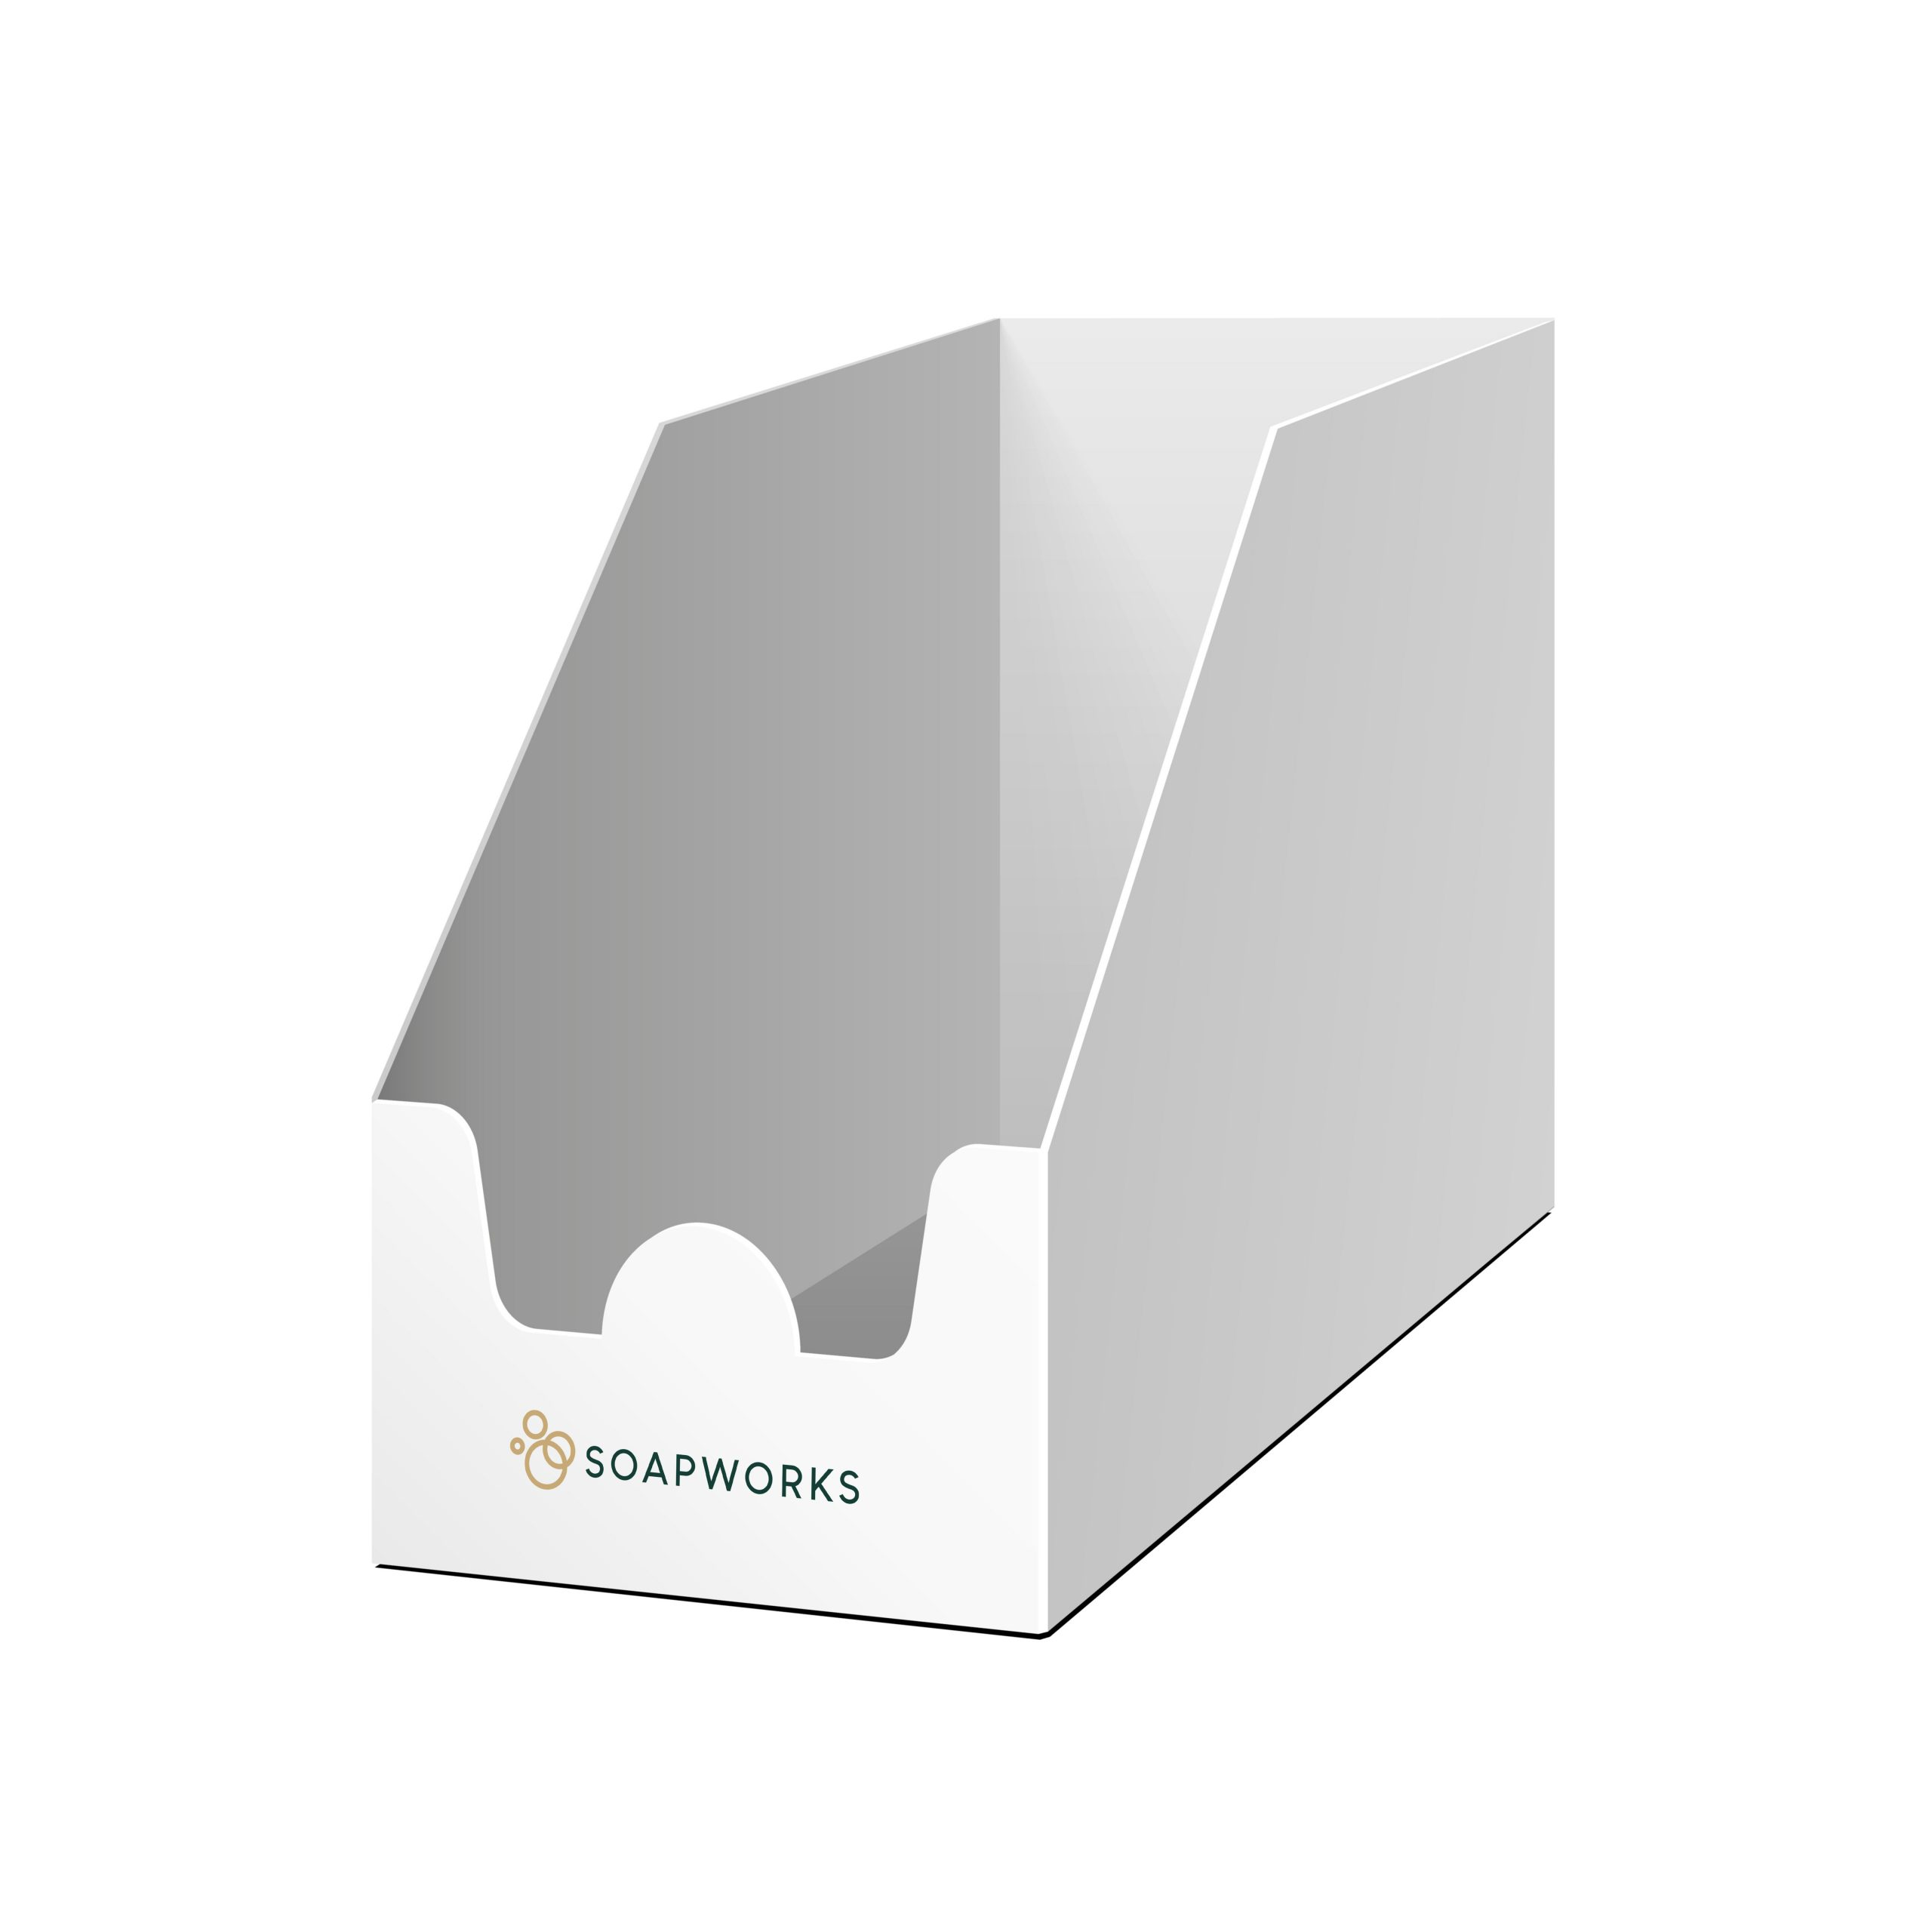 Soapworks shelf ready packaging outer case on a white background